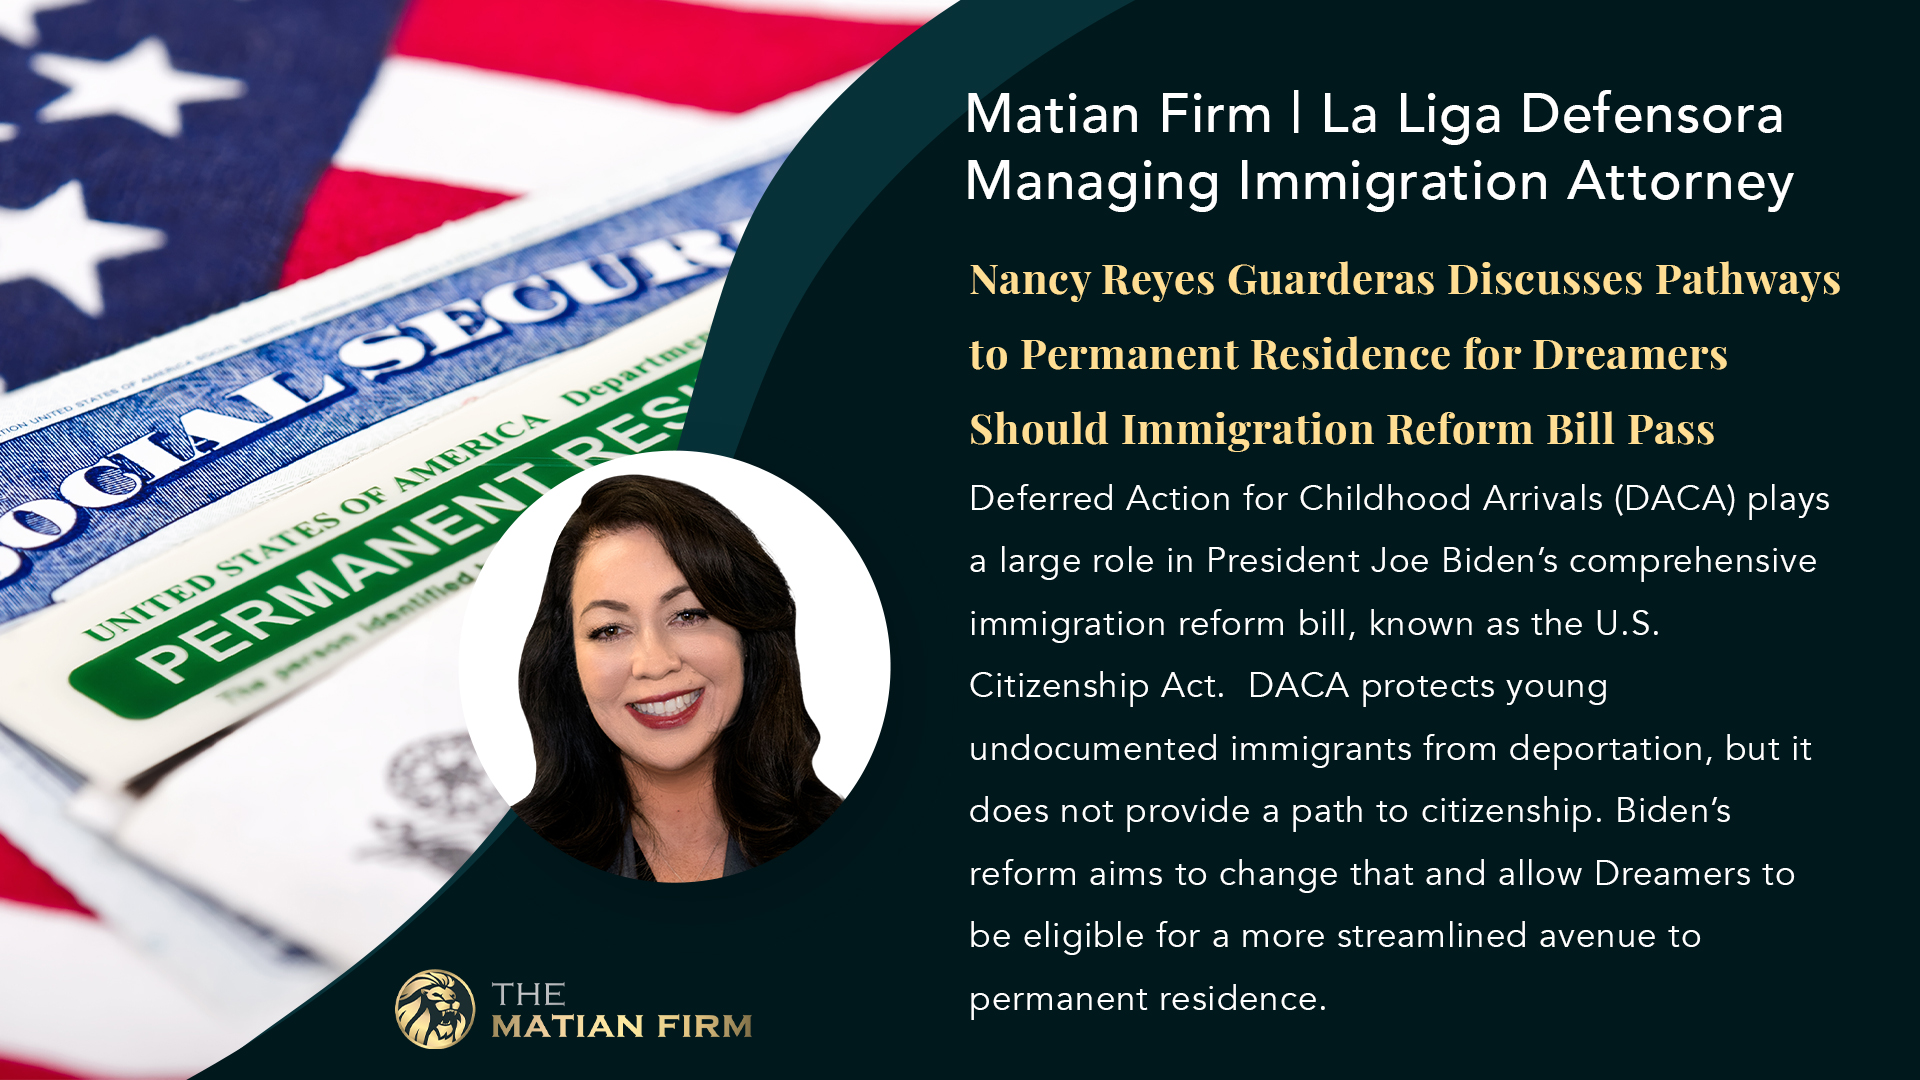 Matian Firm | La Liga Defensora Managing Immigration Attorney Nancy Reyes Guarderas Discusses Pathways to Permanent Residence for Dreamers Should Immigration Reform Bill Pass